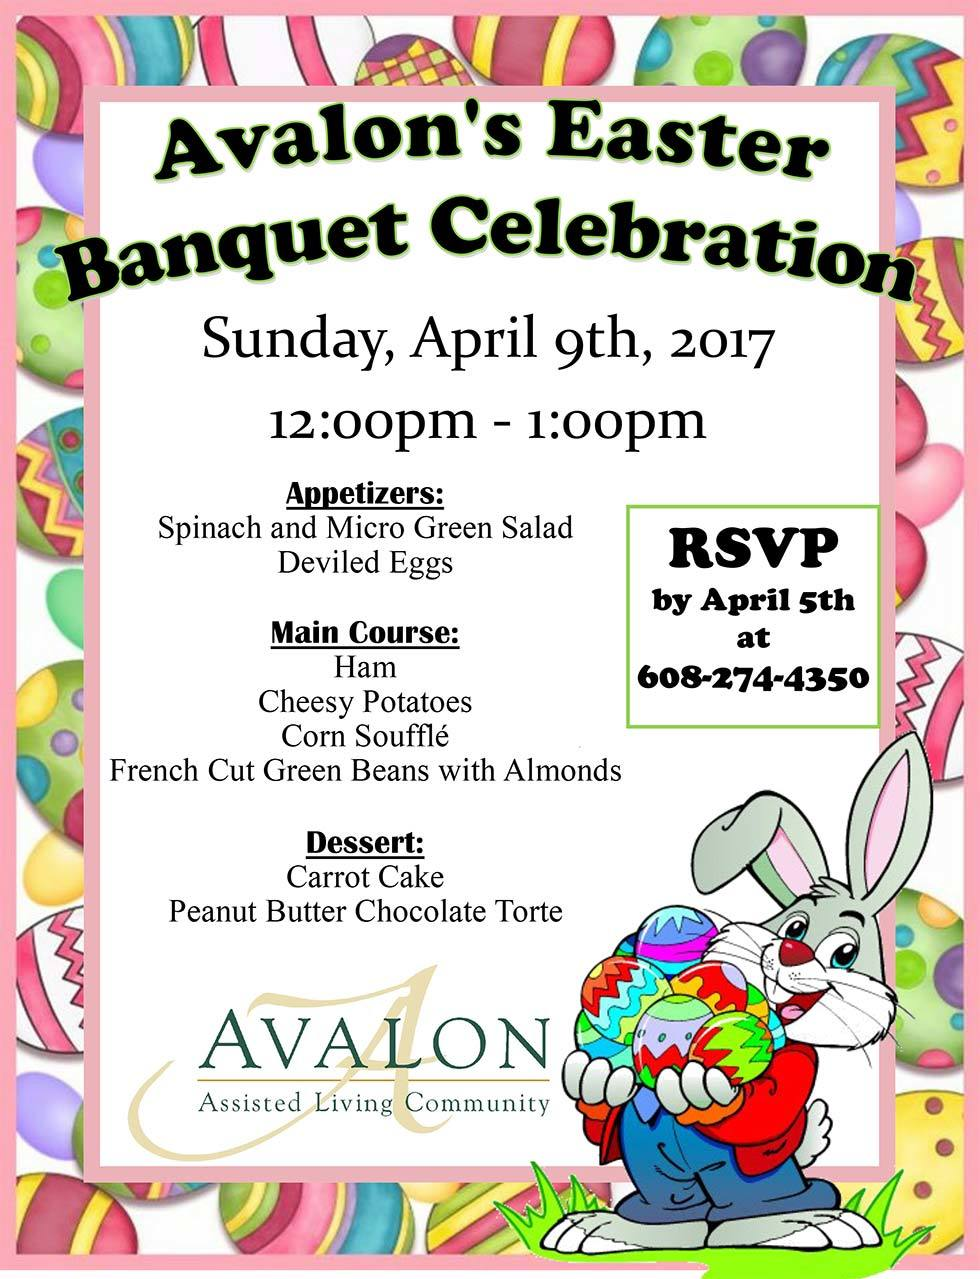 Join us for our Easter Banquet